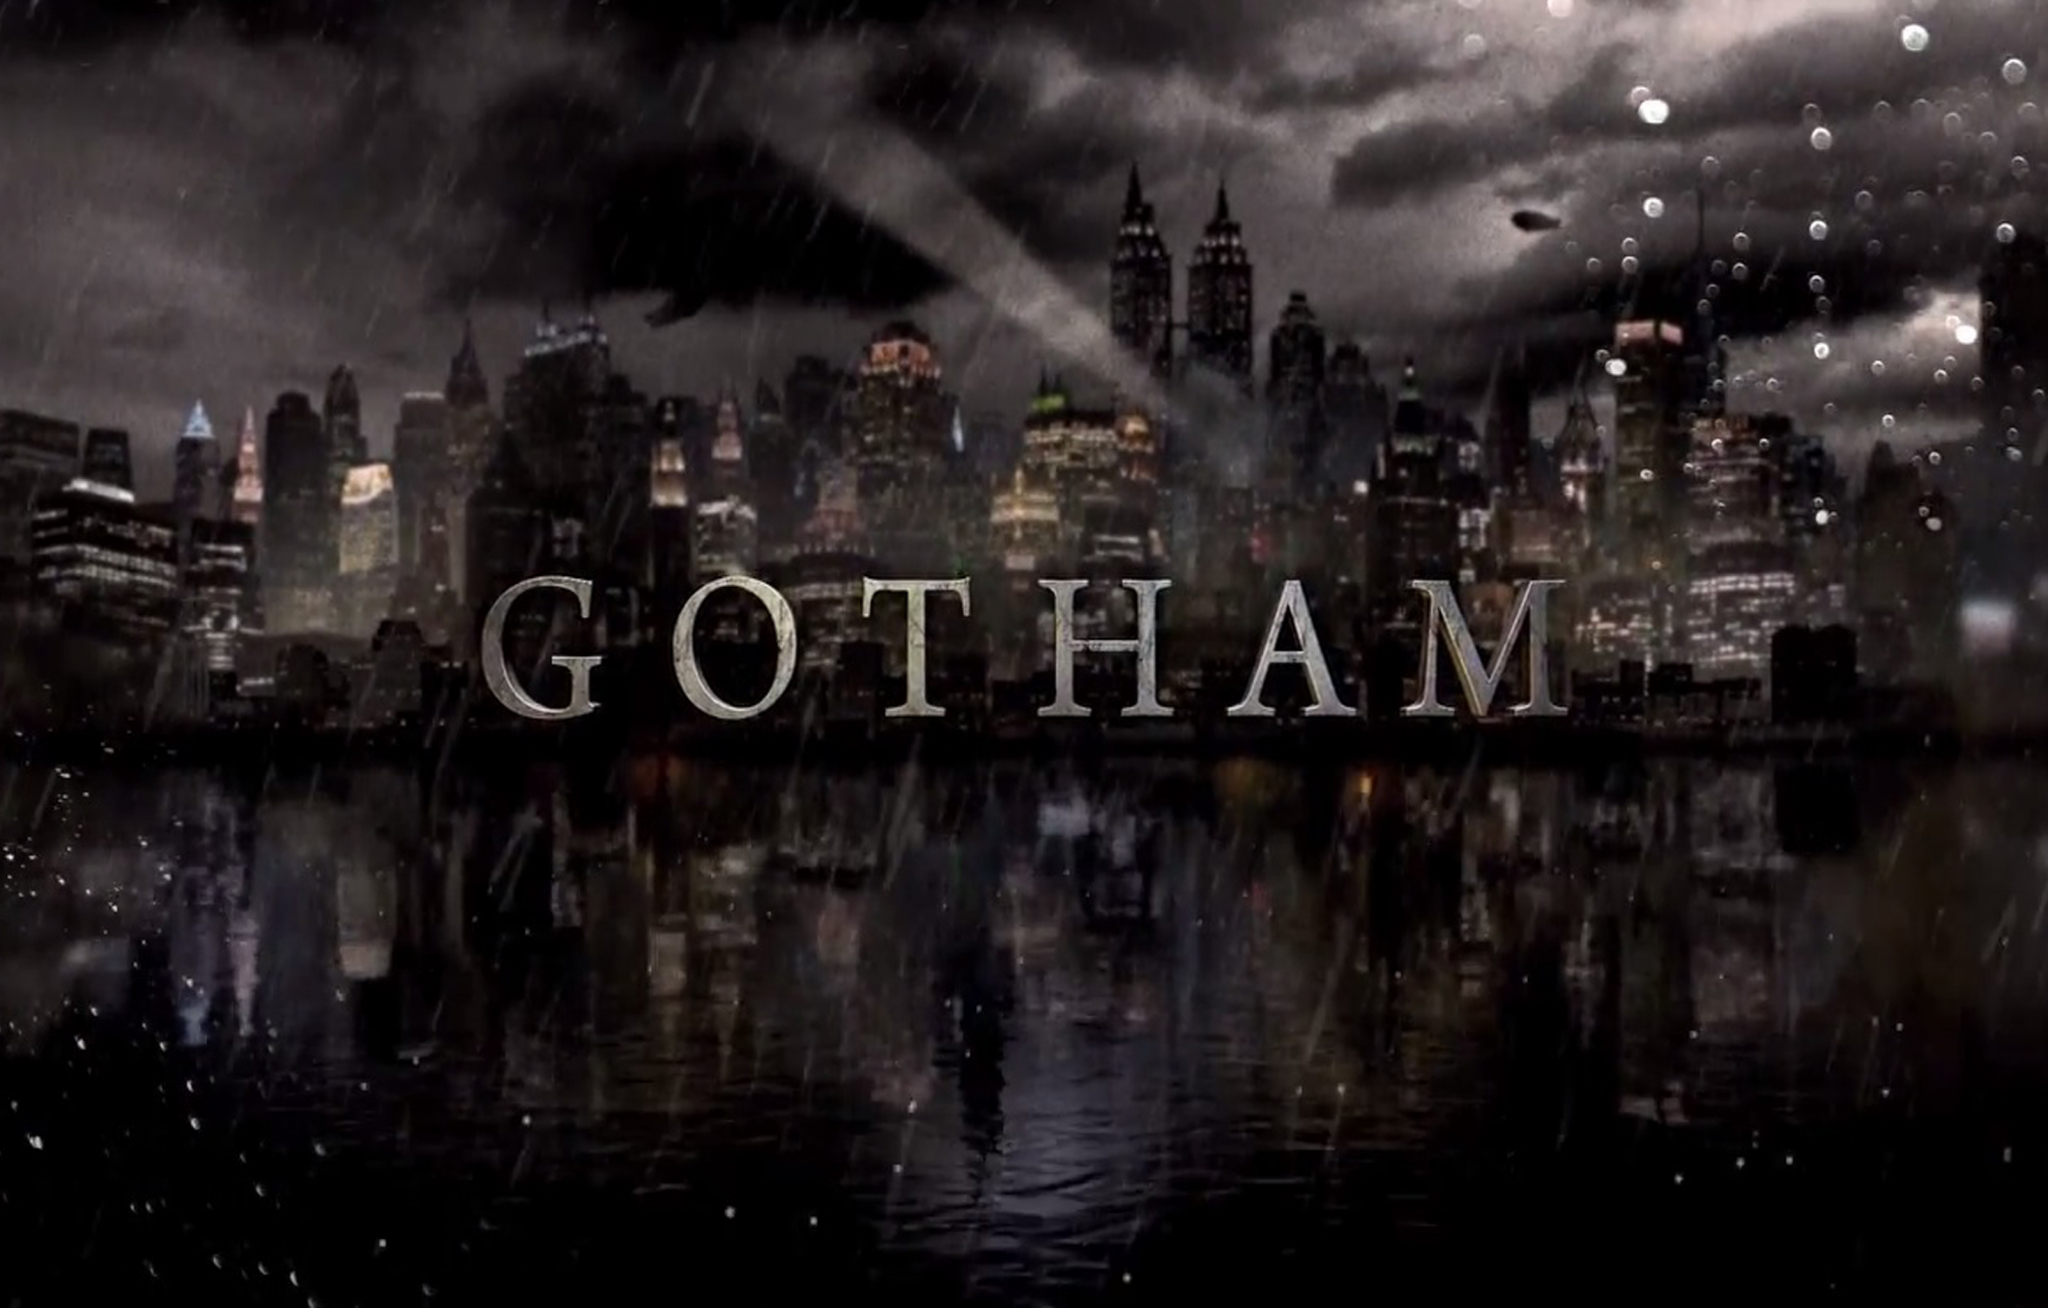 Revolution Tv Series Wallpapers: Gotham TV Wallpapers High Resolution And Quality Download